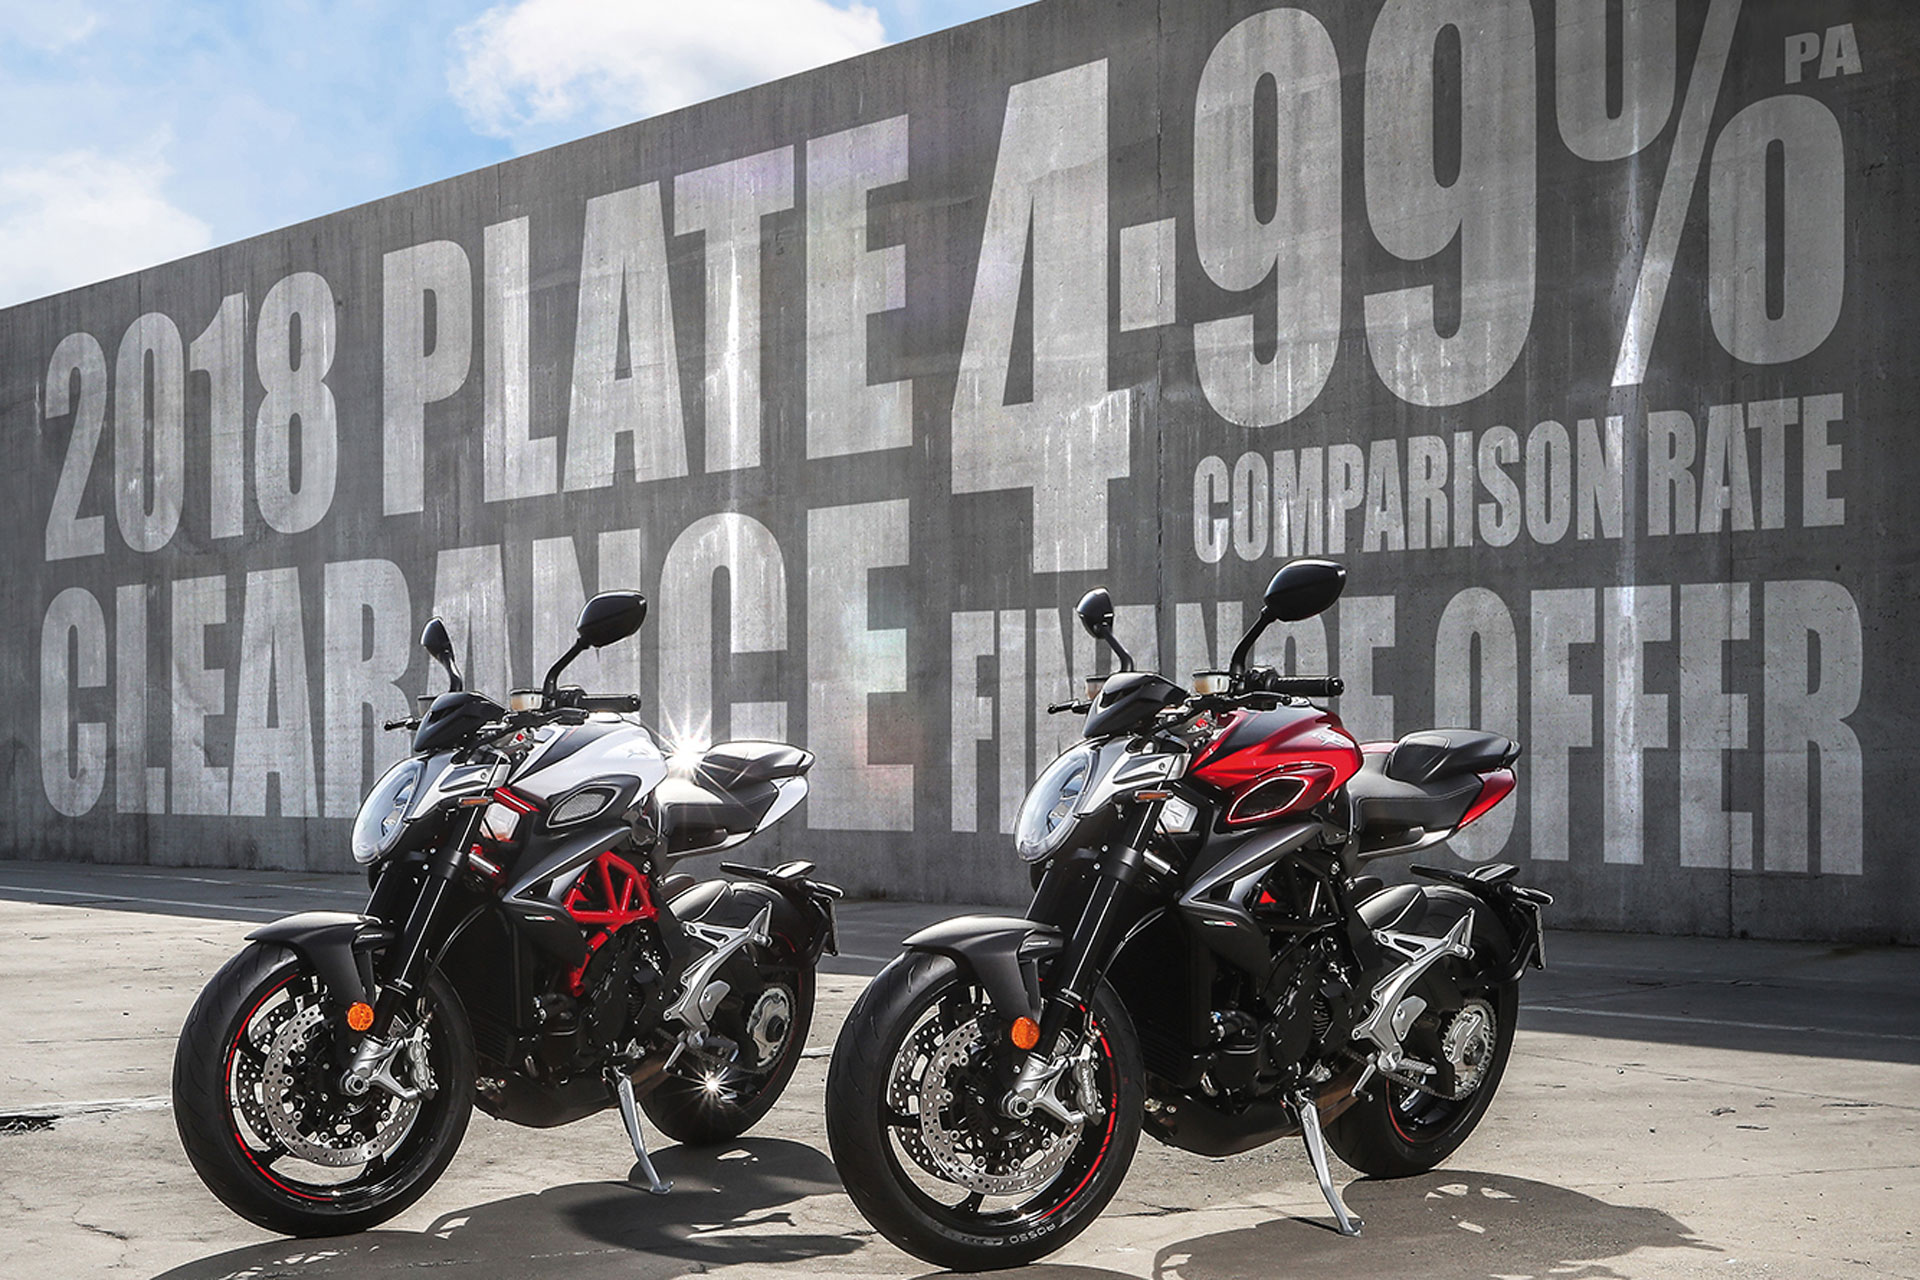 MV Agusta Australia 2019 Finance Offer: 4.99% comparison rate